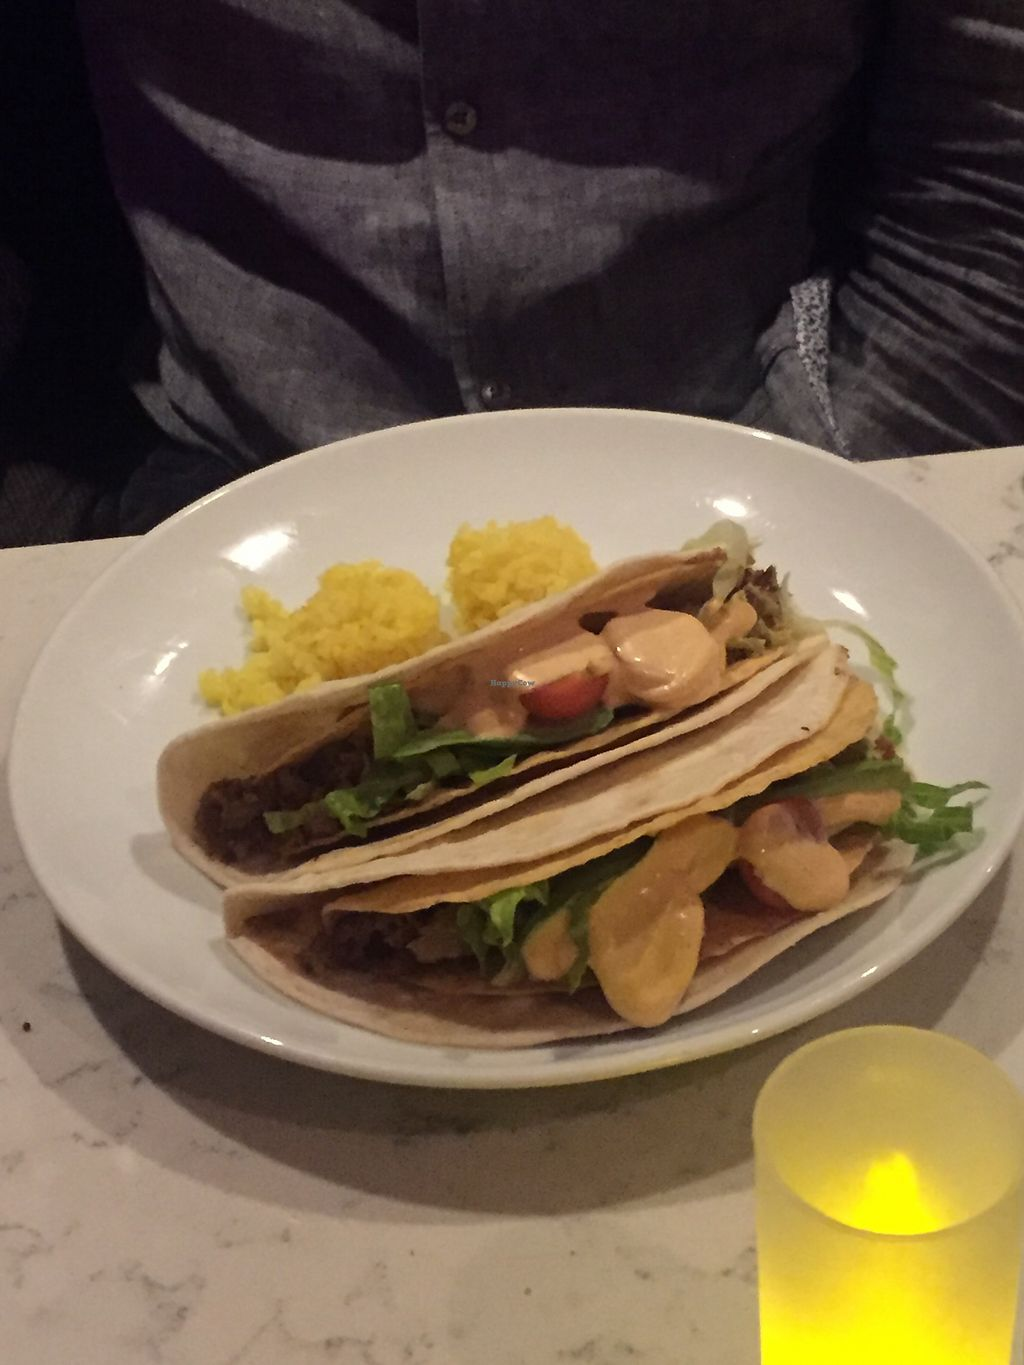 """Photo of Urban Vegan Kitchen  by <a href=""""/members/profile/KaitlynnGill"""">KaitlynnGill</a> <br/>Tacos <br/> December 3, 2017  - <a href='/contact/abuse/image/31266/331975'>Report</a>"""